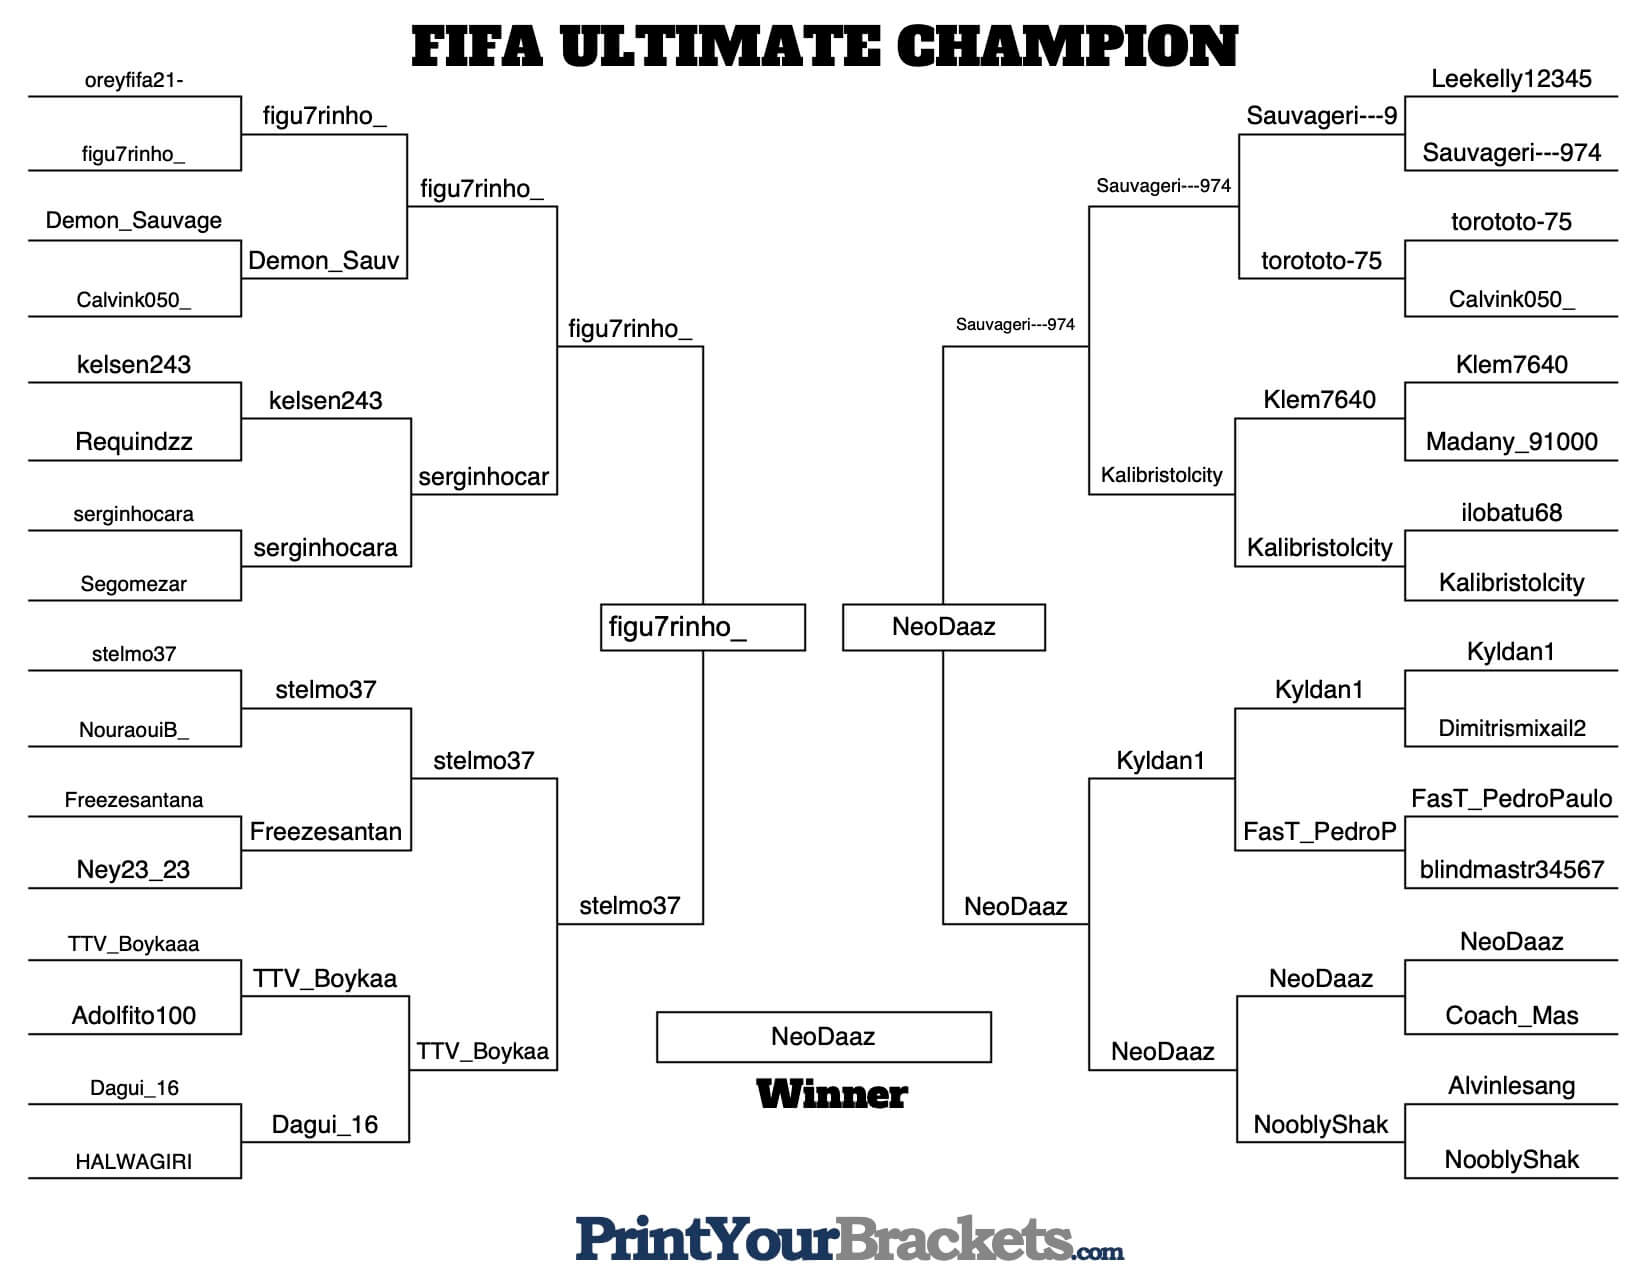 FIFA Ultimate Champion Final Results.jpg